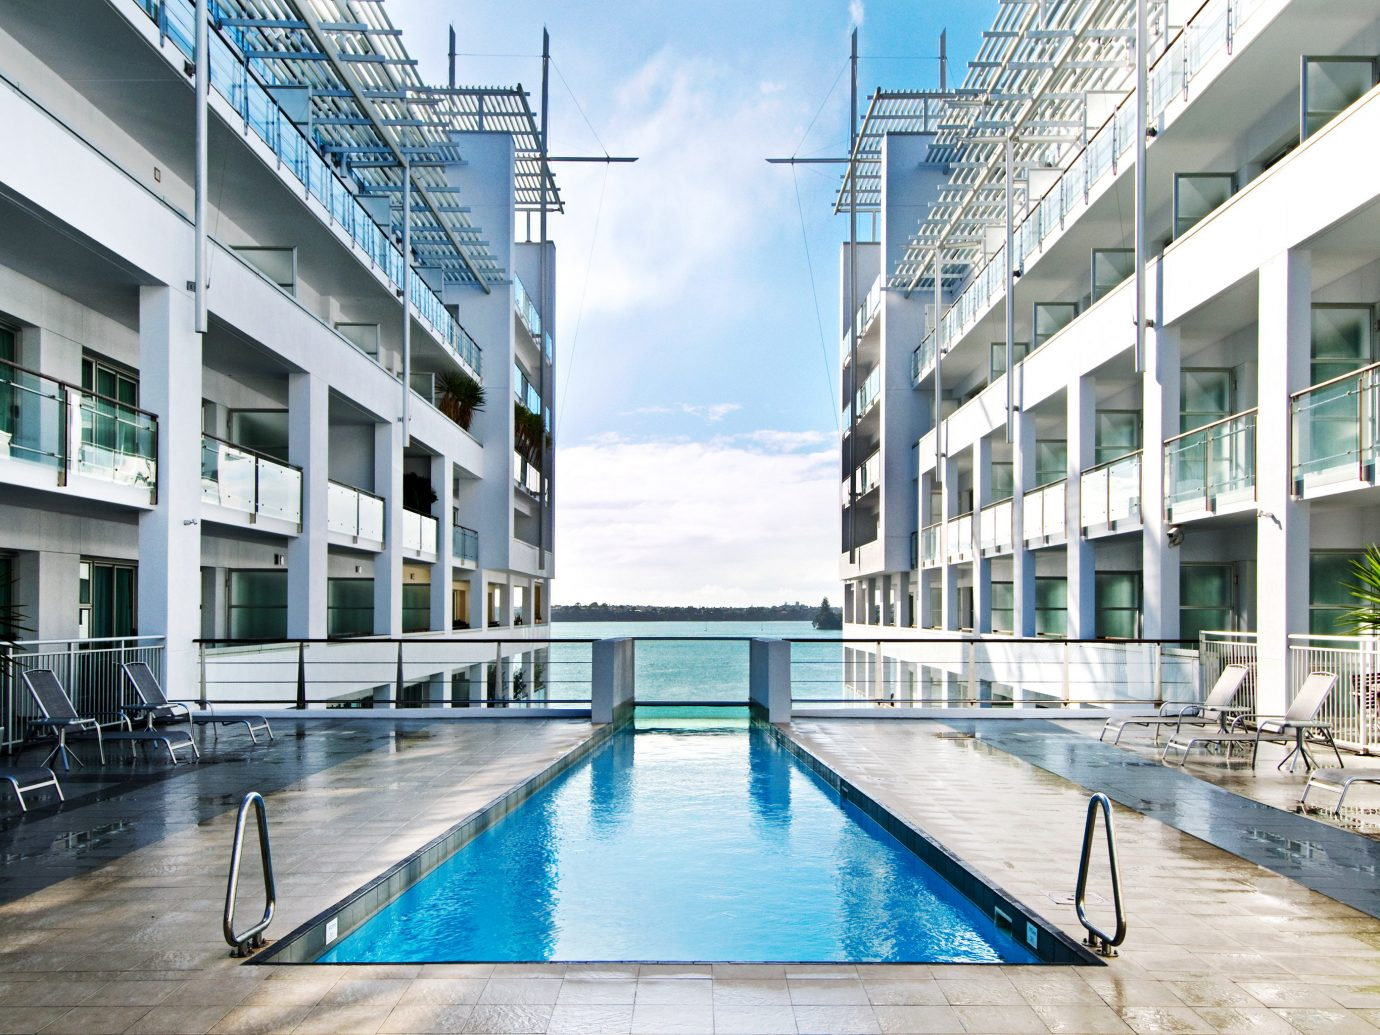 Architecture Boutique Hotels Festivals + Events Hotels Play Pool Resort Trip Ideas Waterfront water ground outdoor leisure swimming pool condominium building plaza headquarters estate facade blue swimming